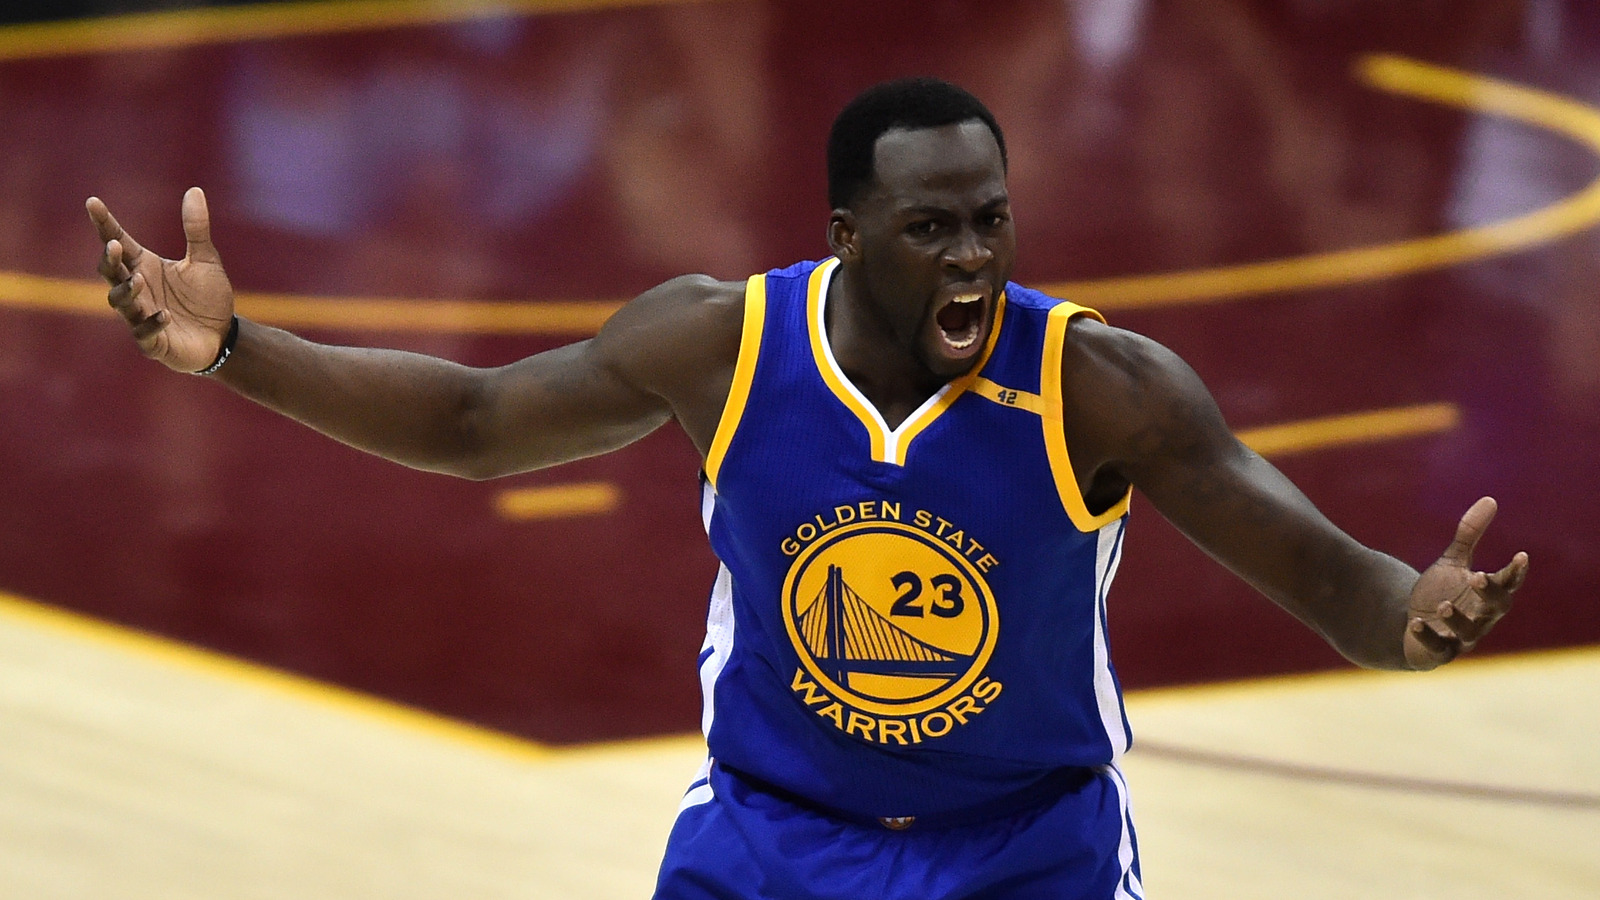 ... Golden State Warriors forward Draymond Green (23) reacts during the  first quarter against the Cleveland Cavaliers in game four of the Finals for  the ... b84894649